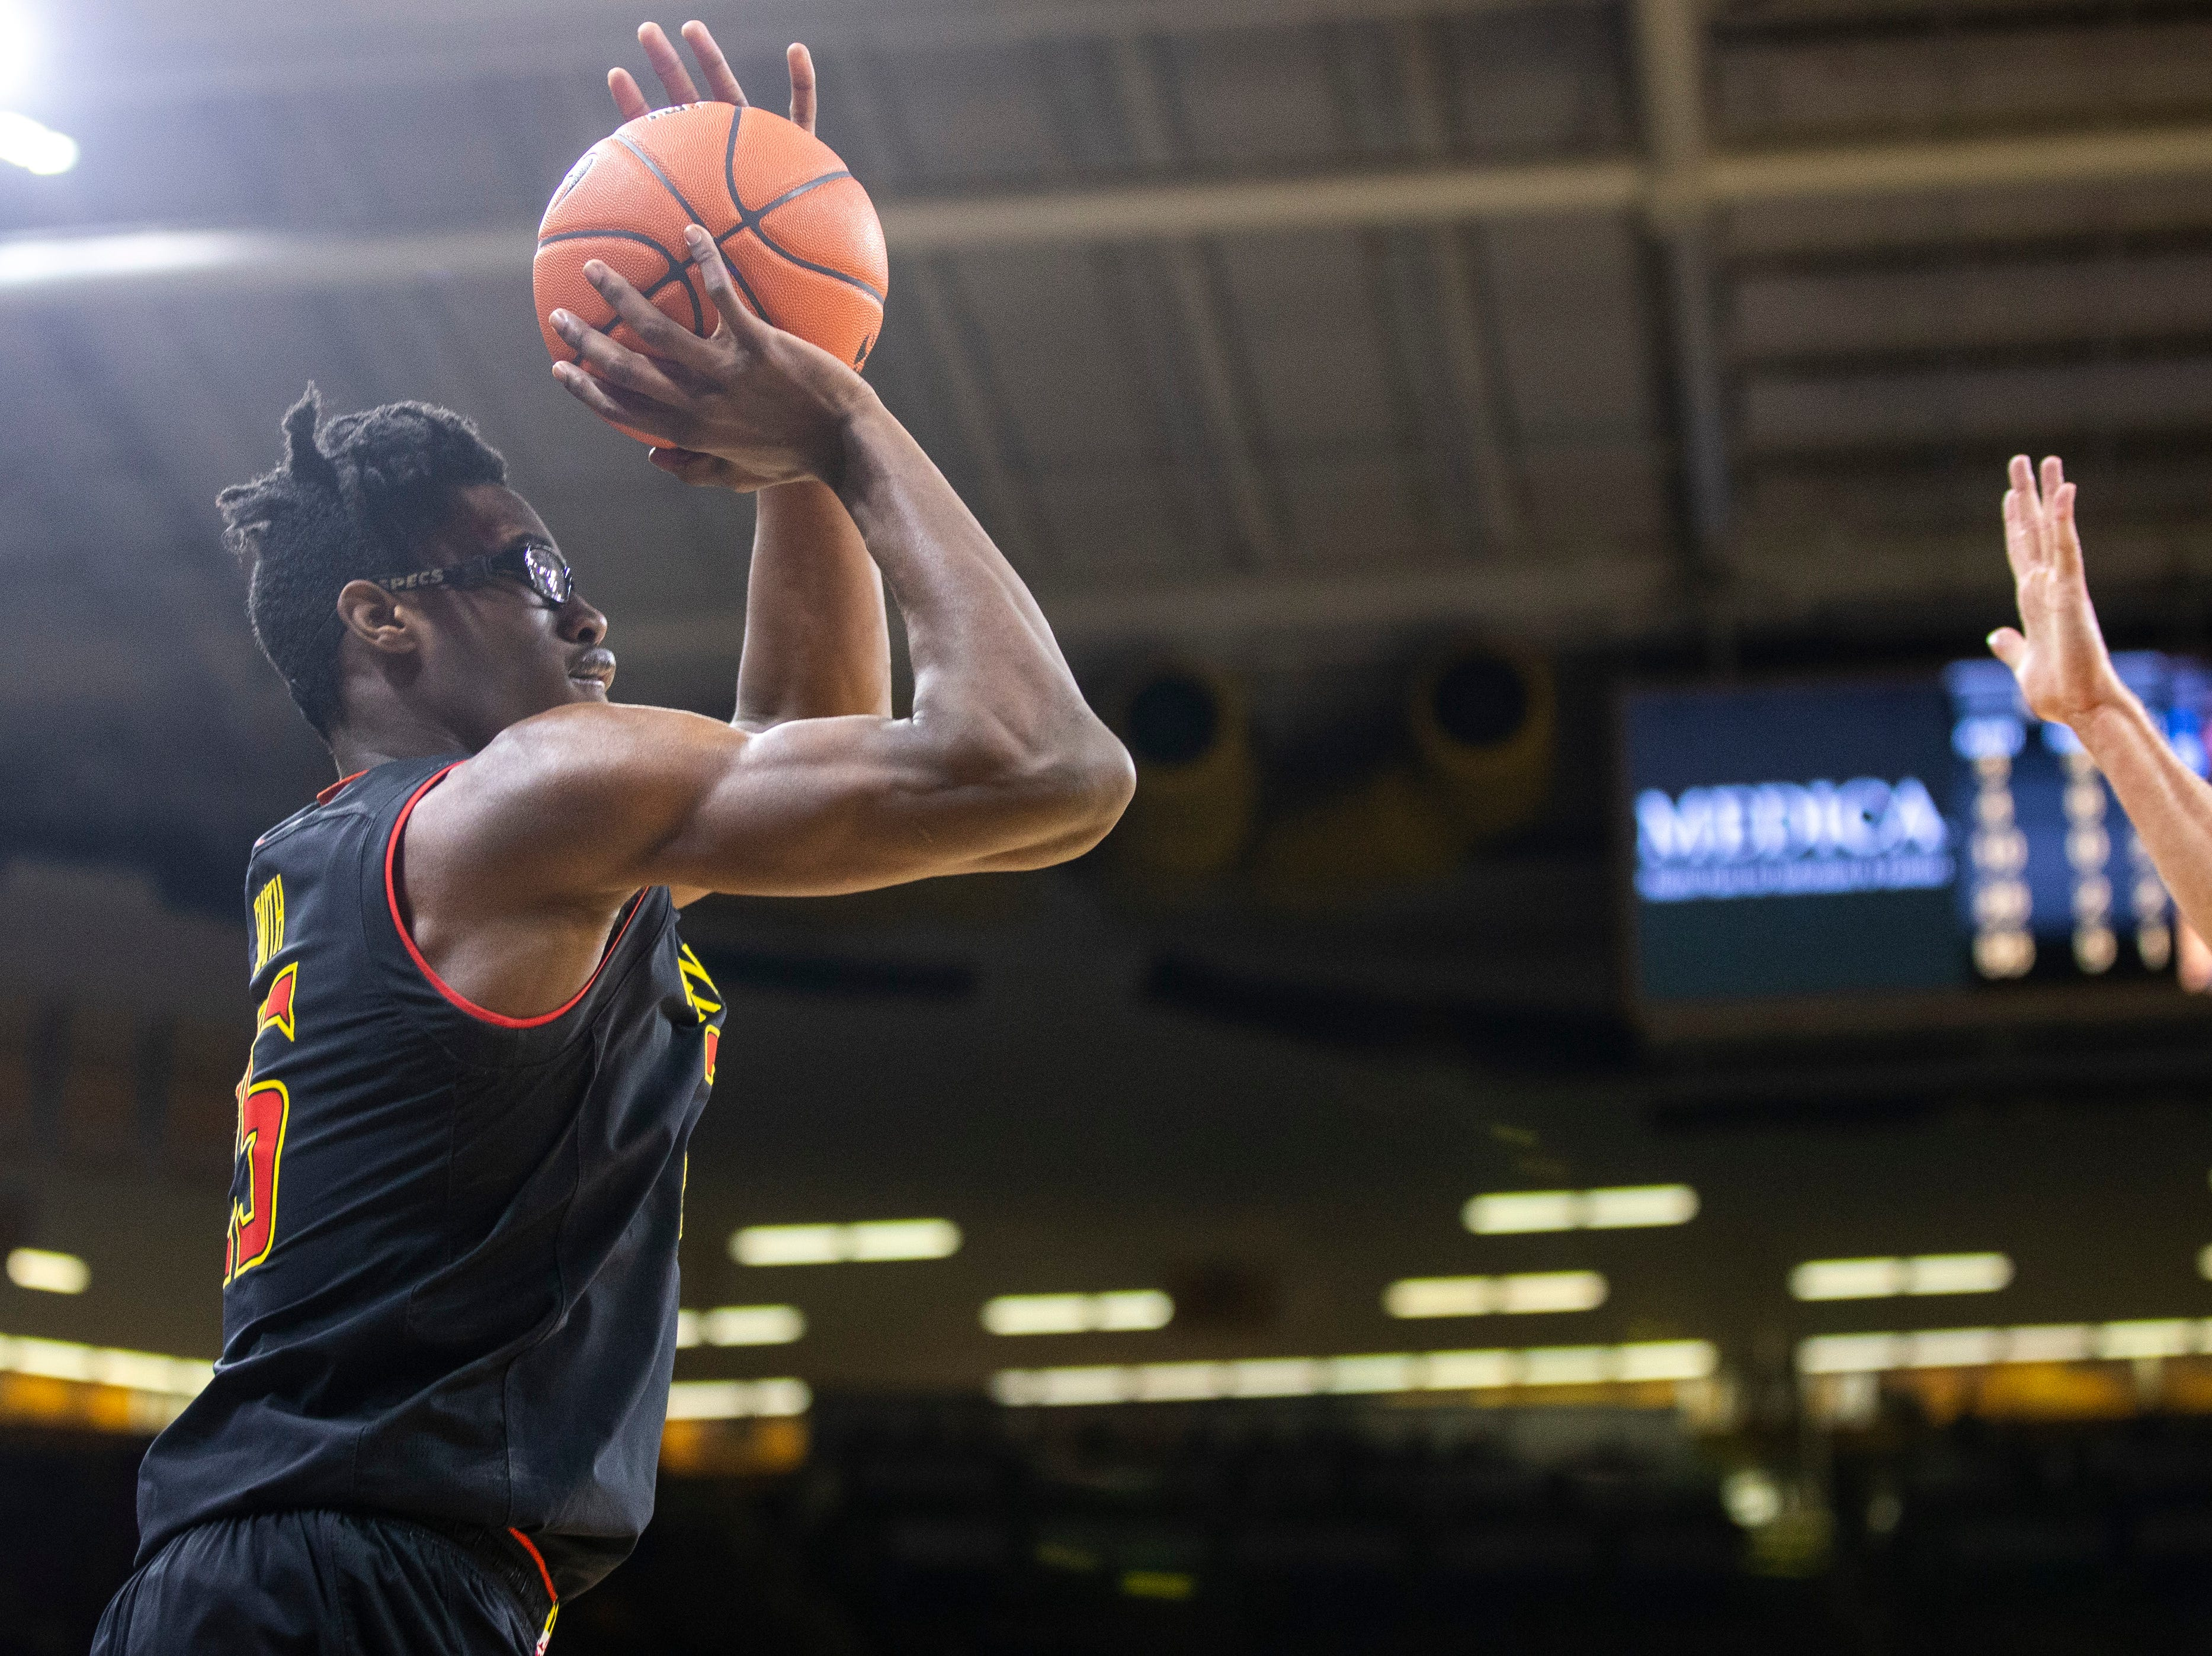 Maryland forward Jalen Smith (25) shoots a 3-point basket during a NCAA Big Ten Conference men's basketball game on Tuesday, Feb. 19, 2019 at Carver-Hawkeye Arena in Iowa City, Iowa.